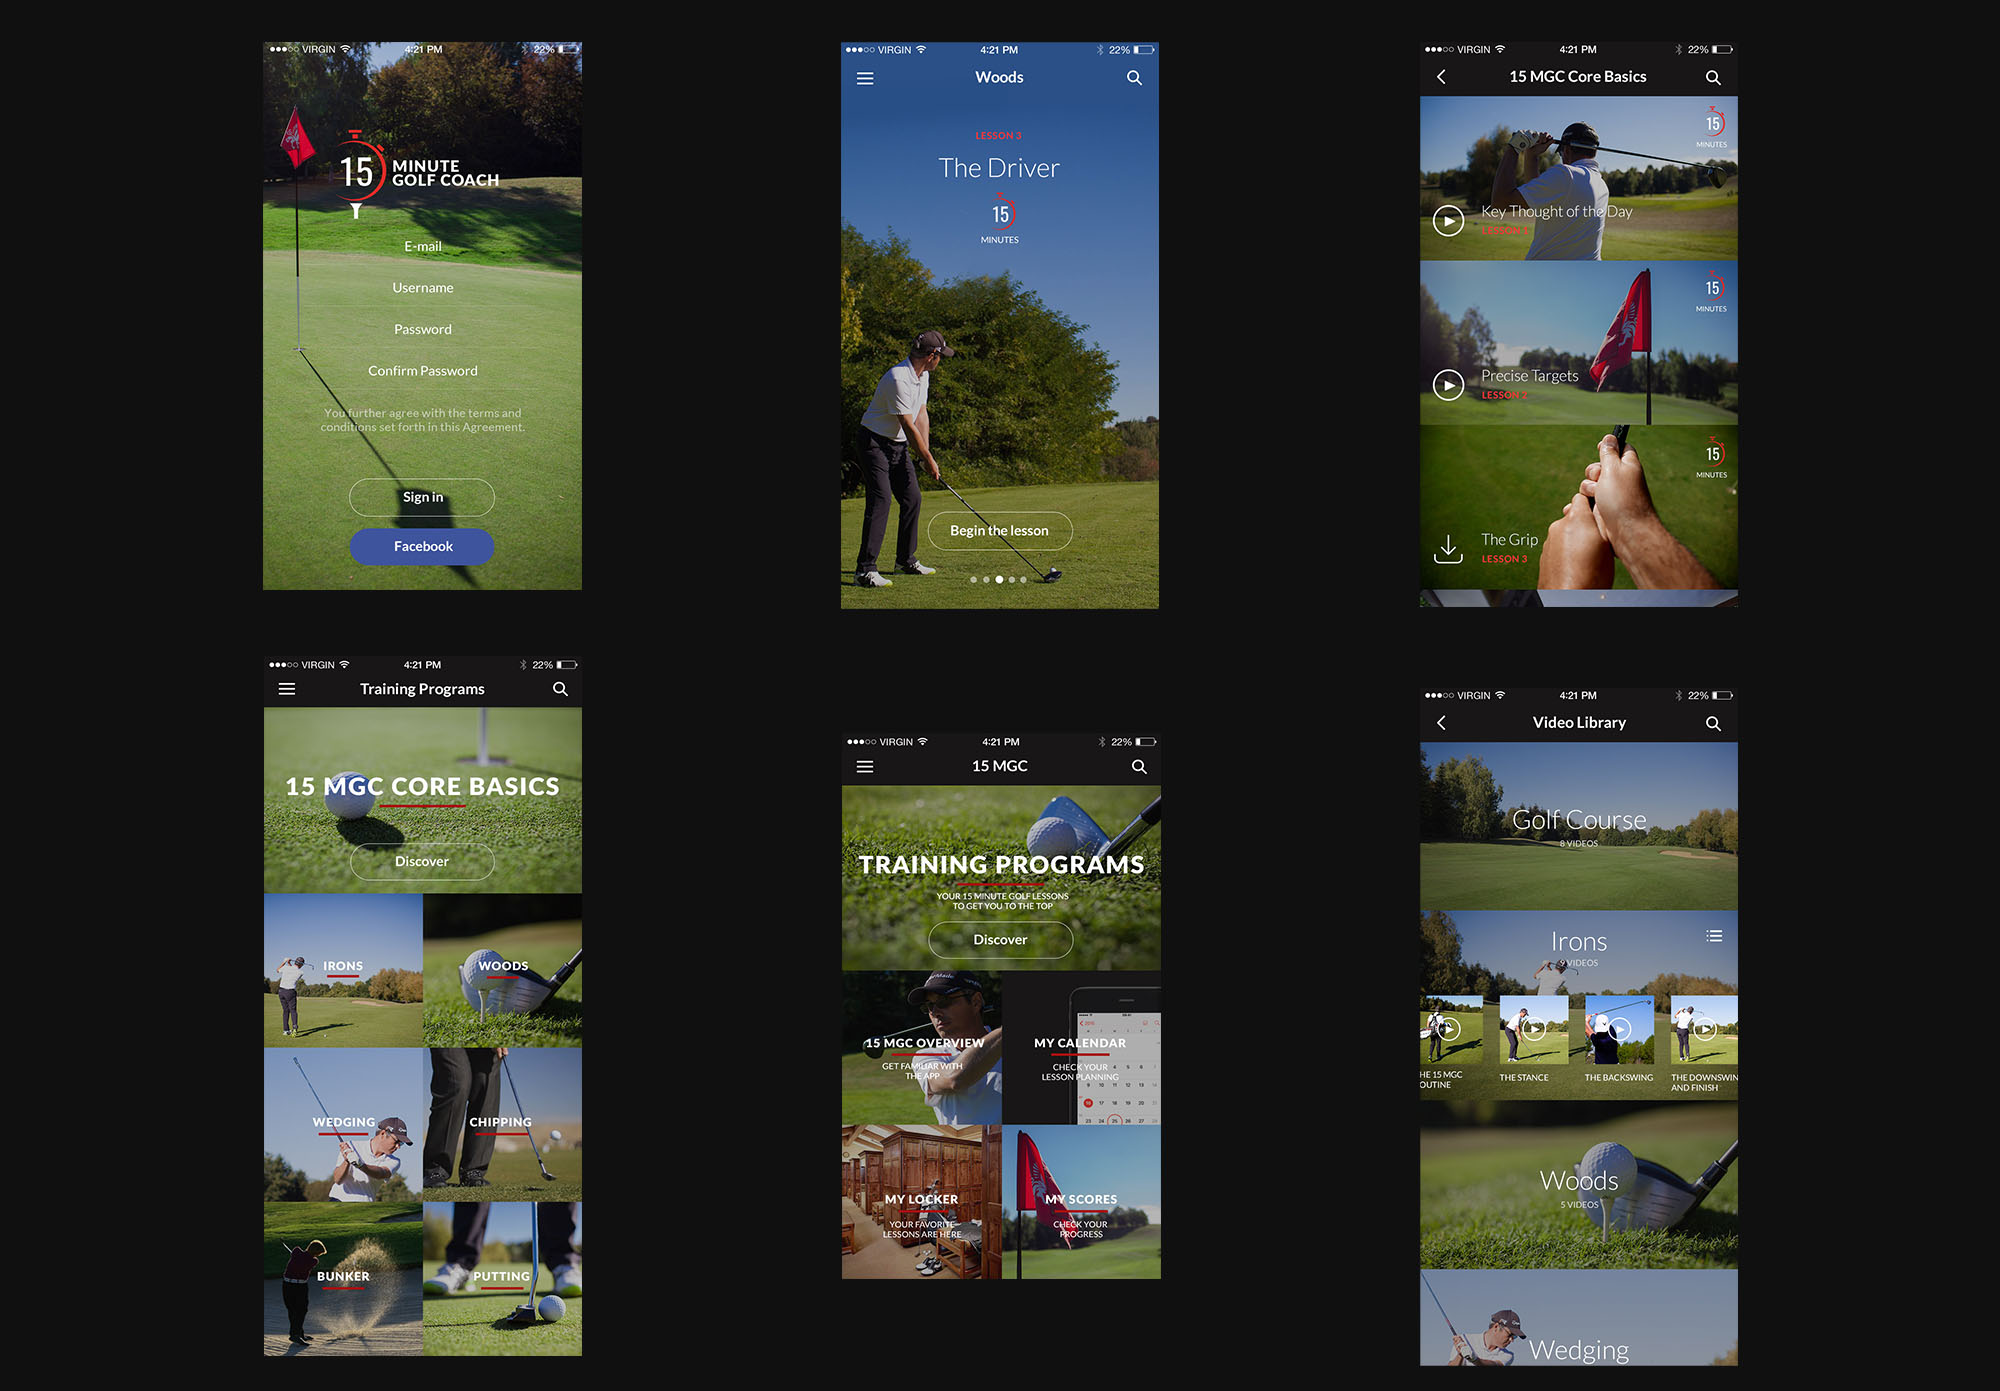 15-minute-golf-coach-ui-design